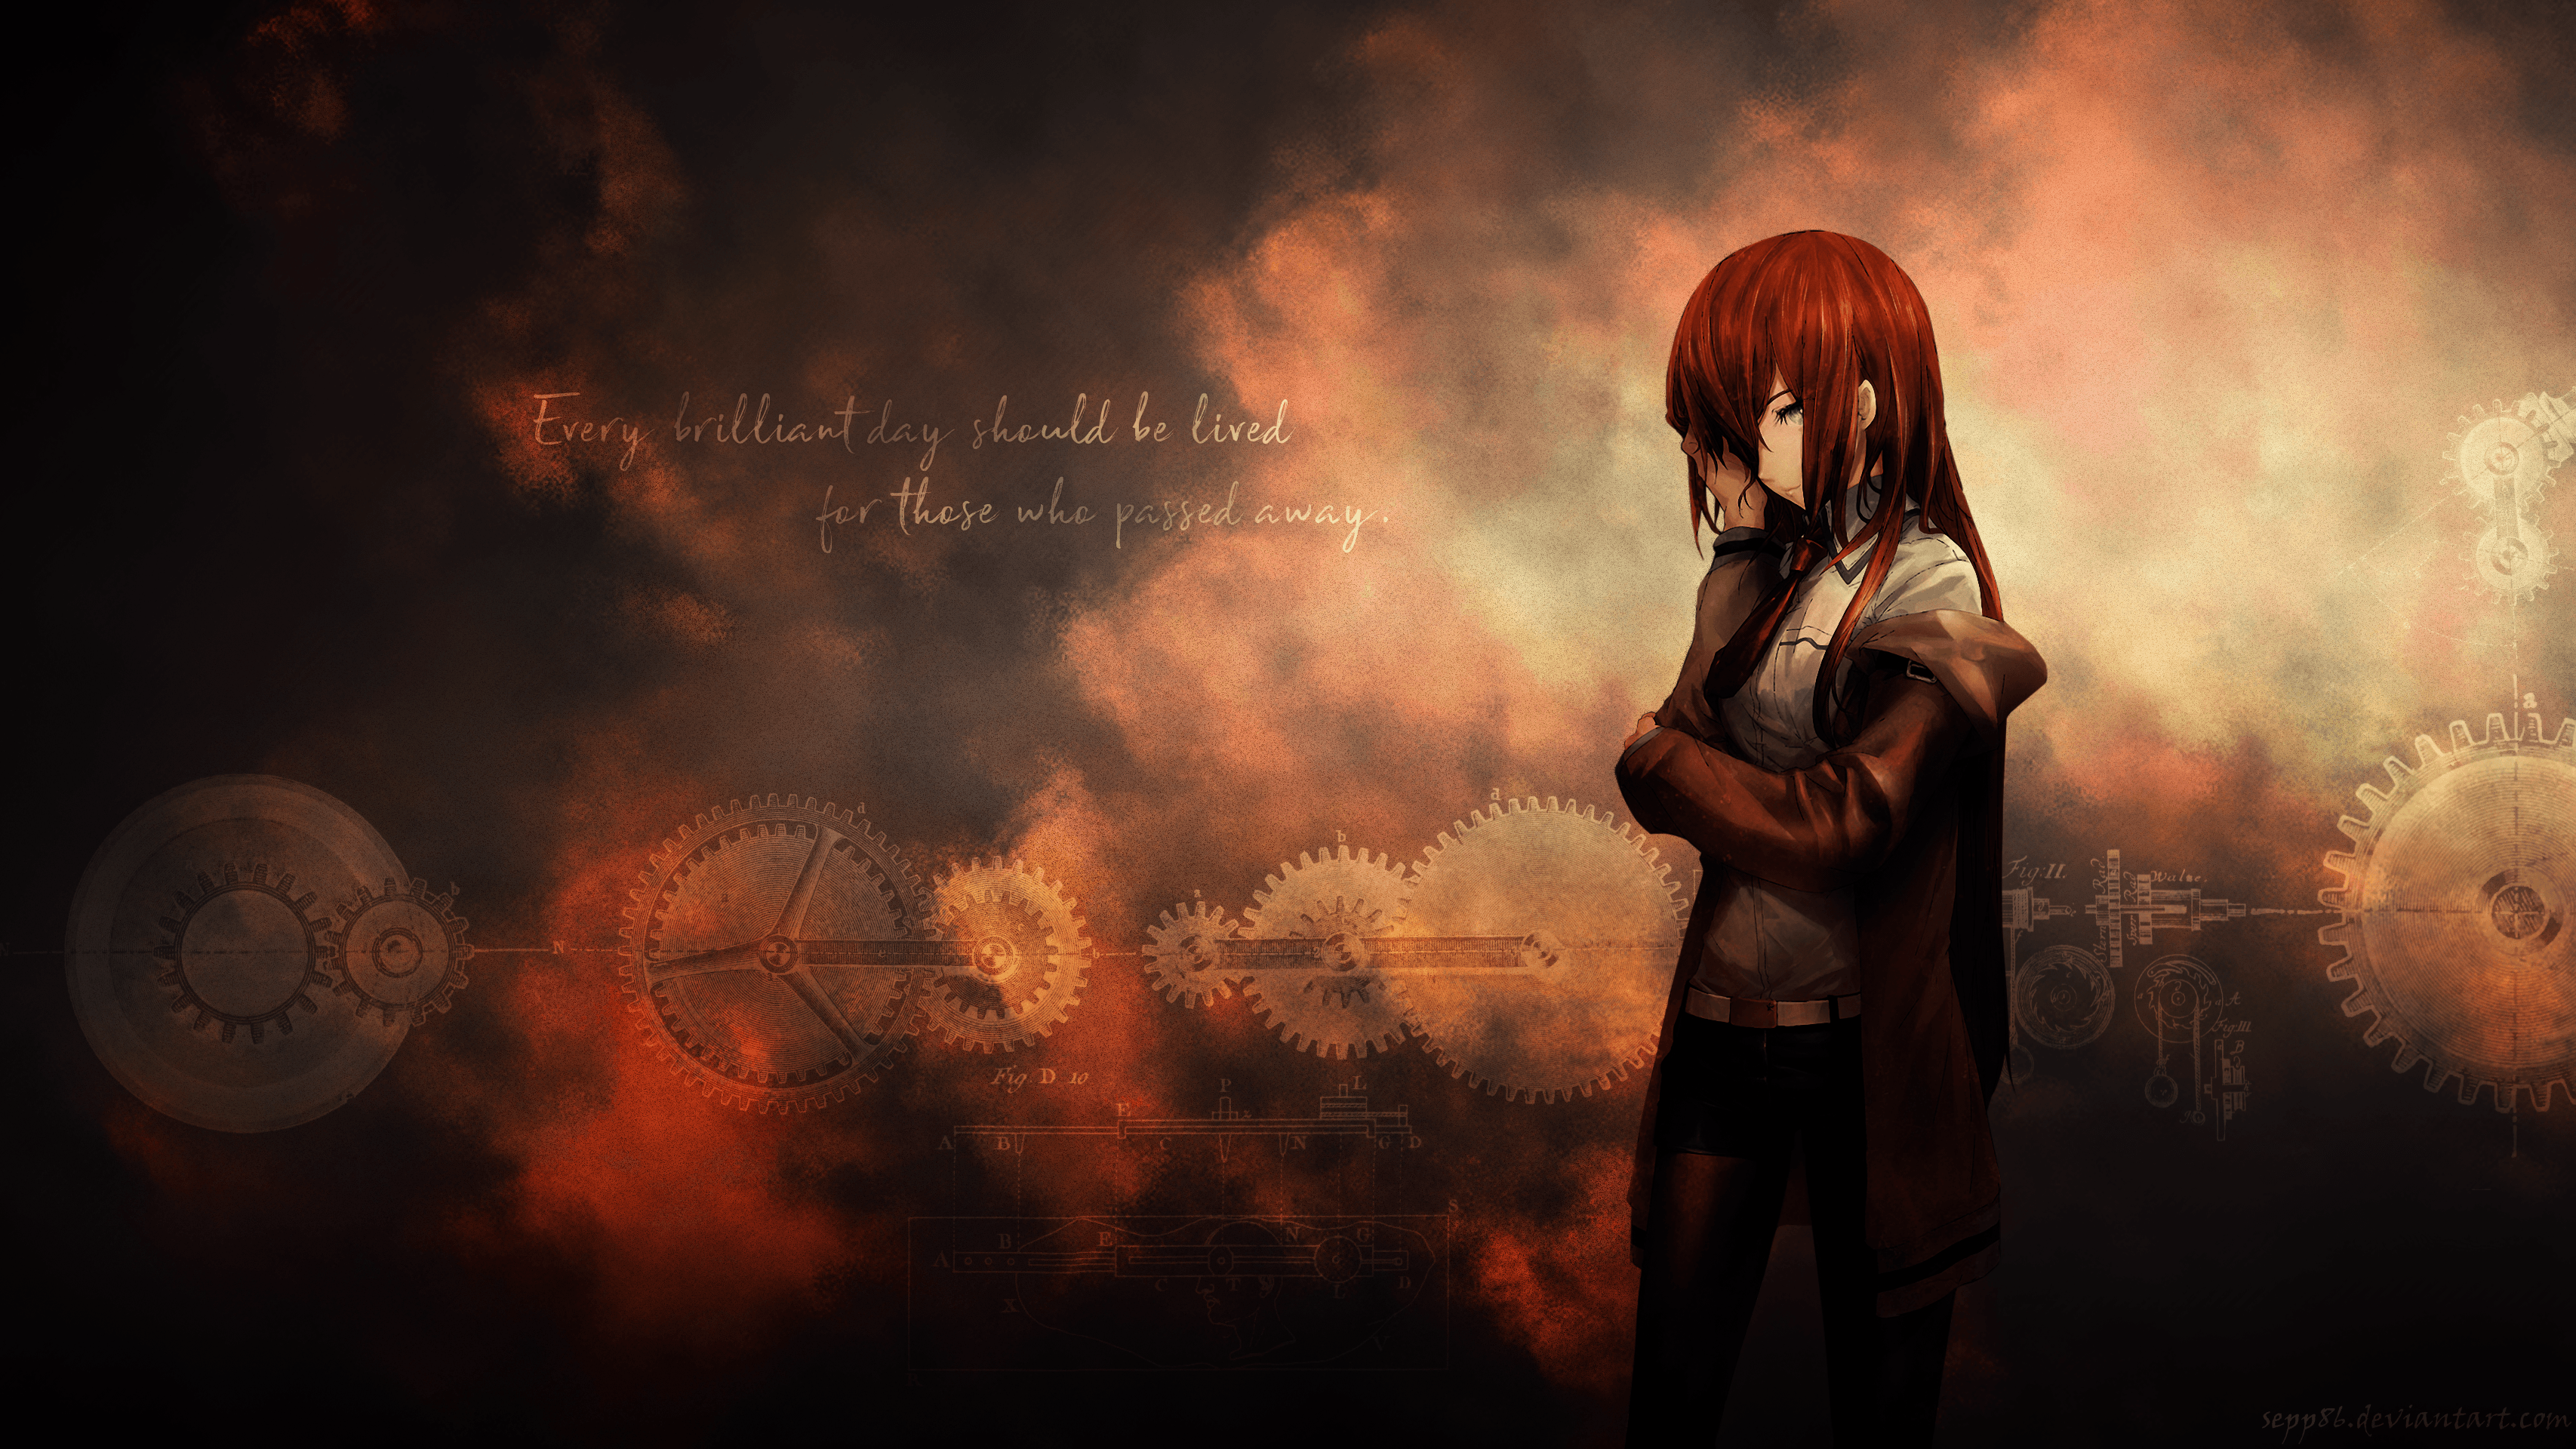 Steins Gate - Kurisu Makise Wallpaper | Steins Gate